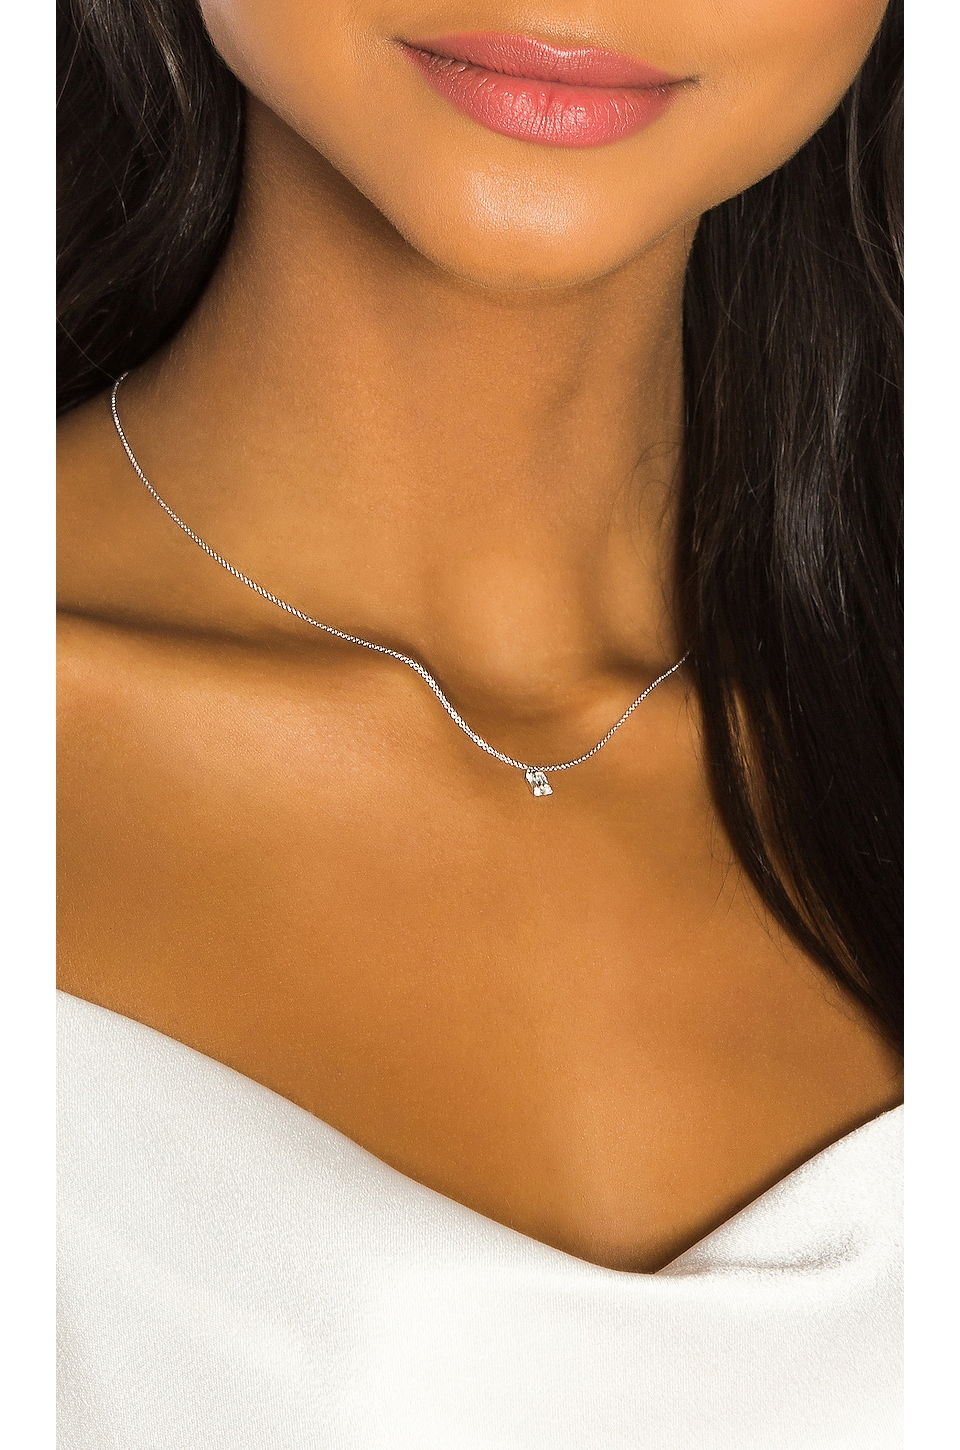 Sachi Baguette Solitaire Necklace in Silver